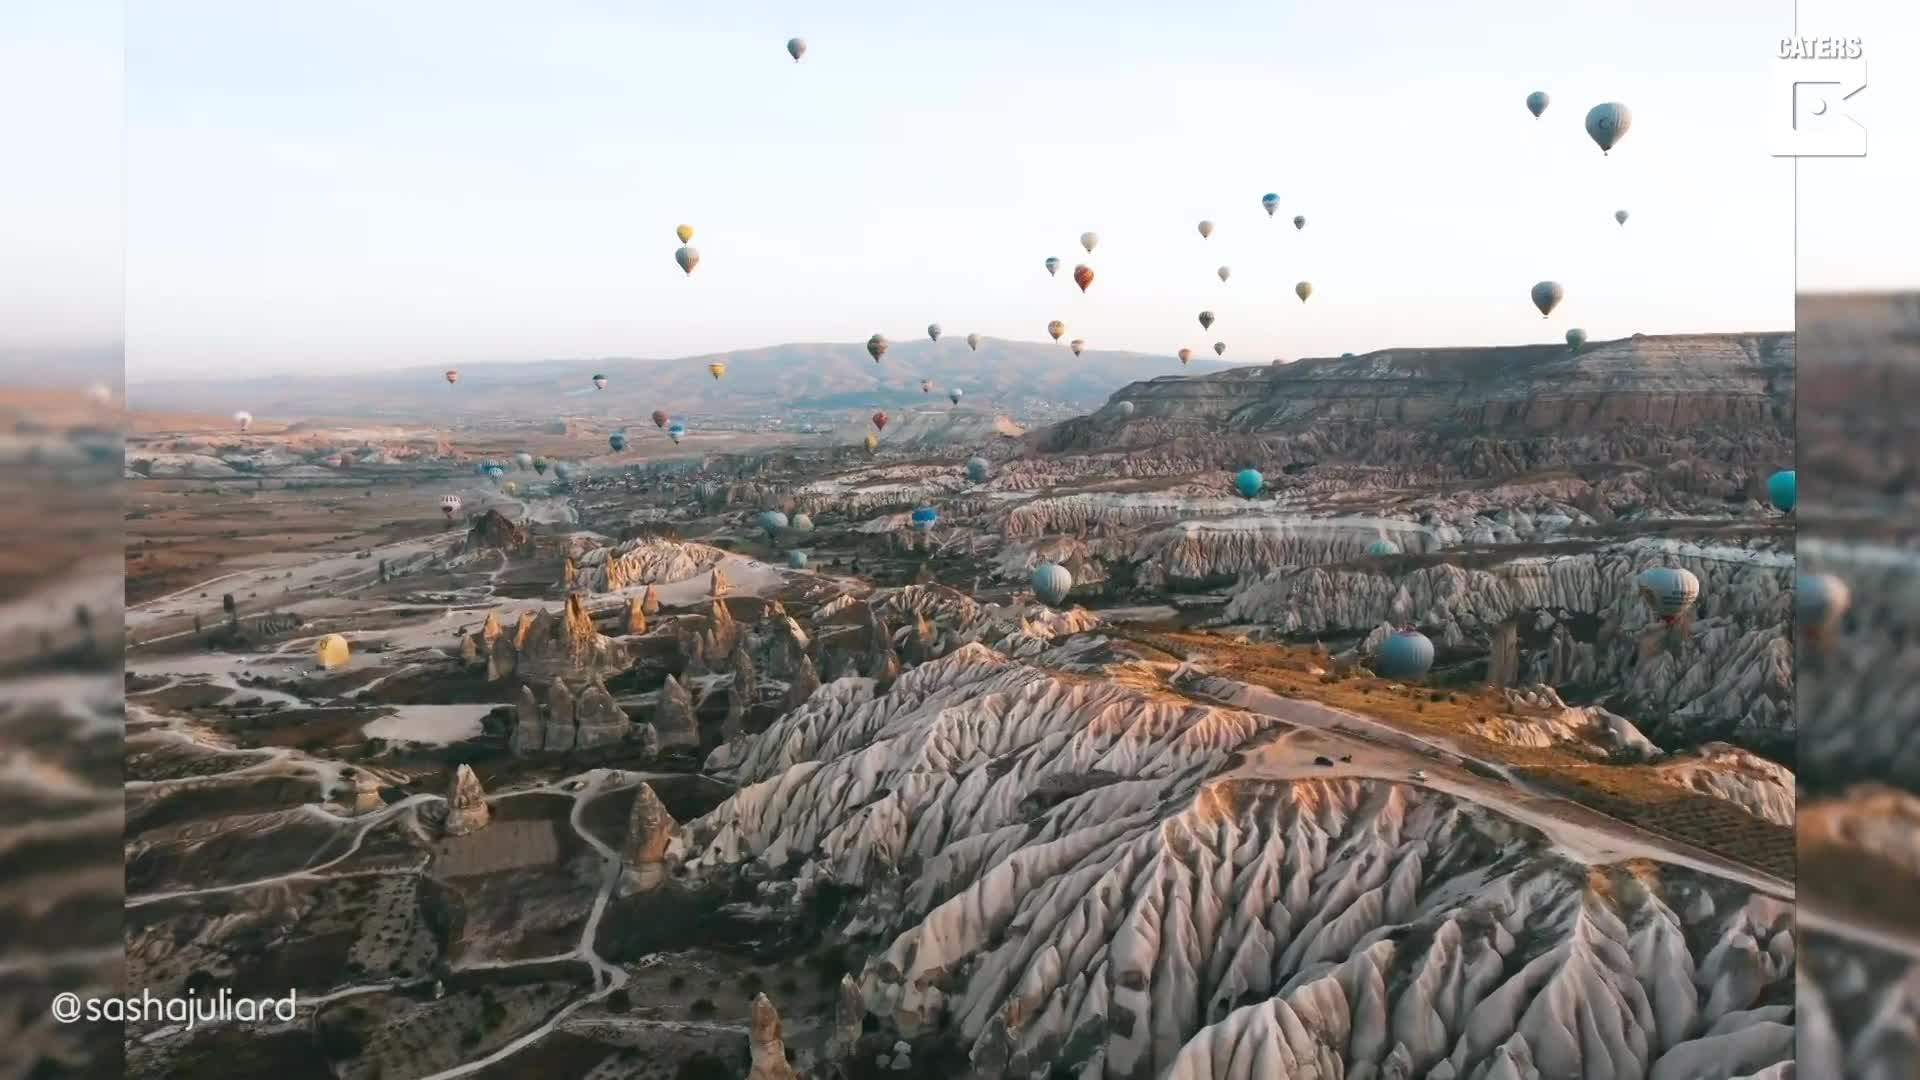 SPECTACULAR VIEWS SHOW HUNDREDS OF HOT AIR BALLOONS RISE WITH THE SUN